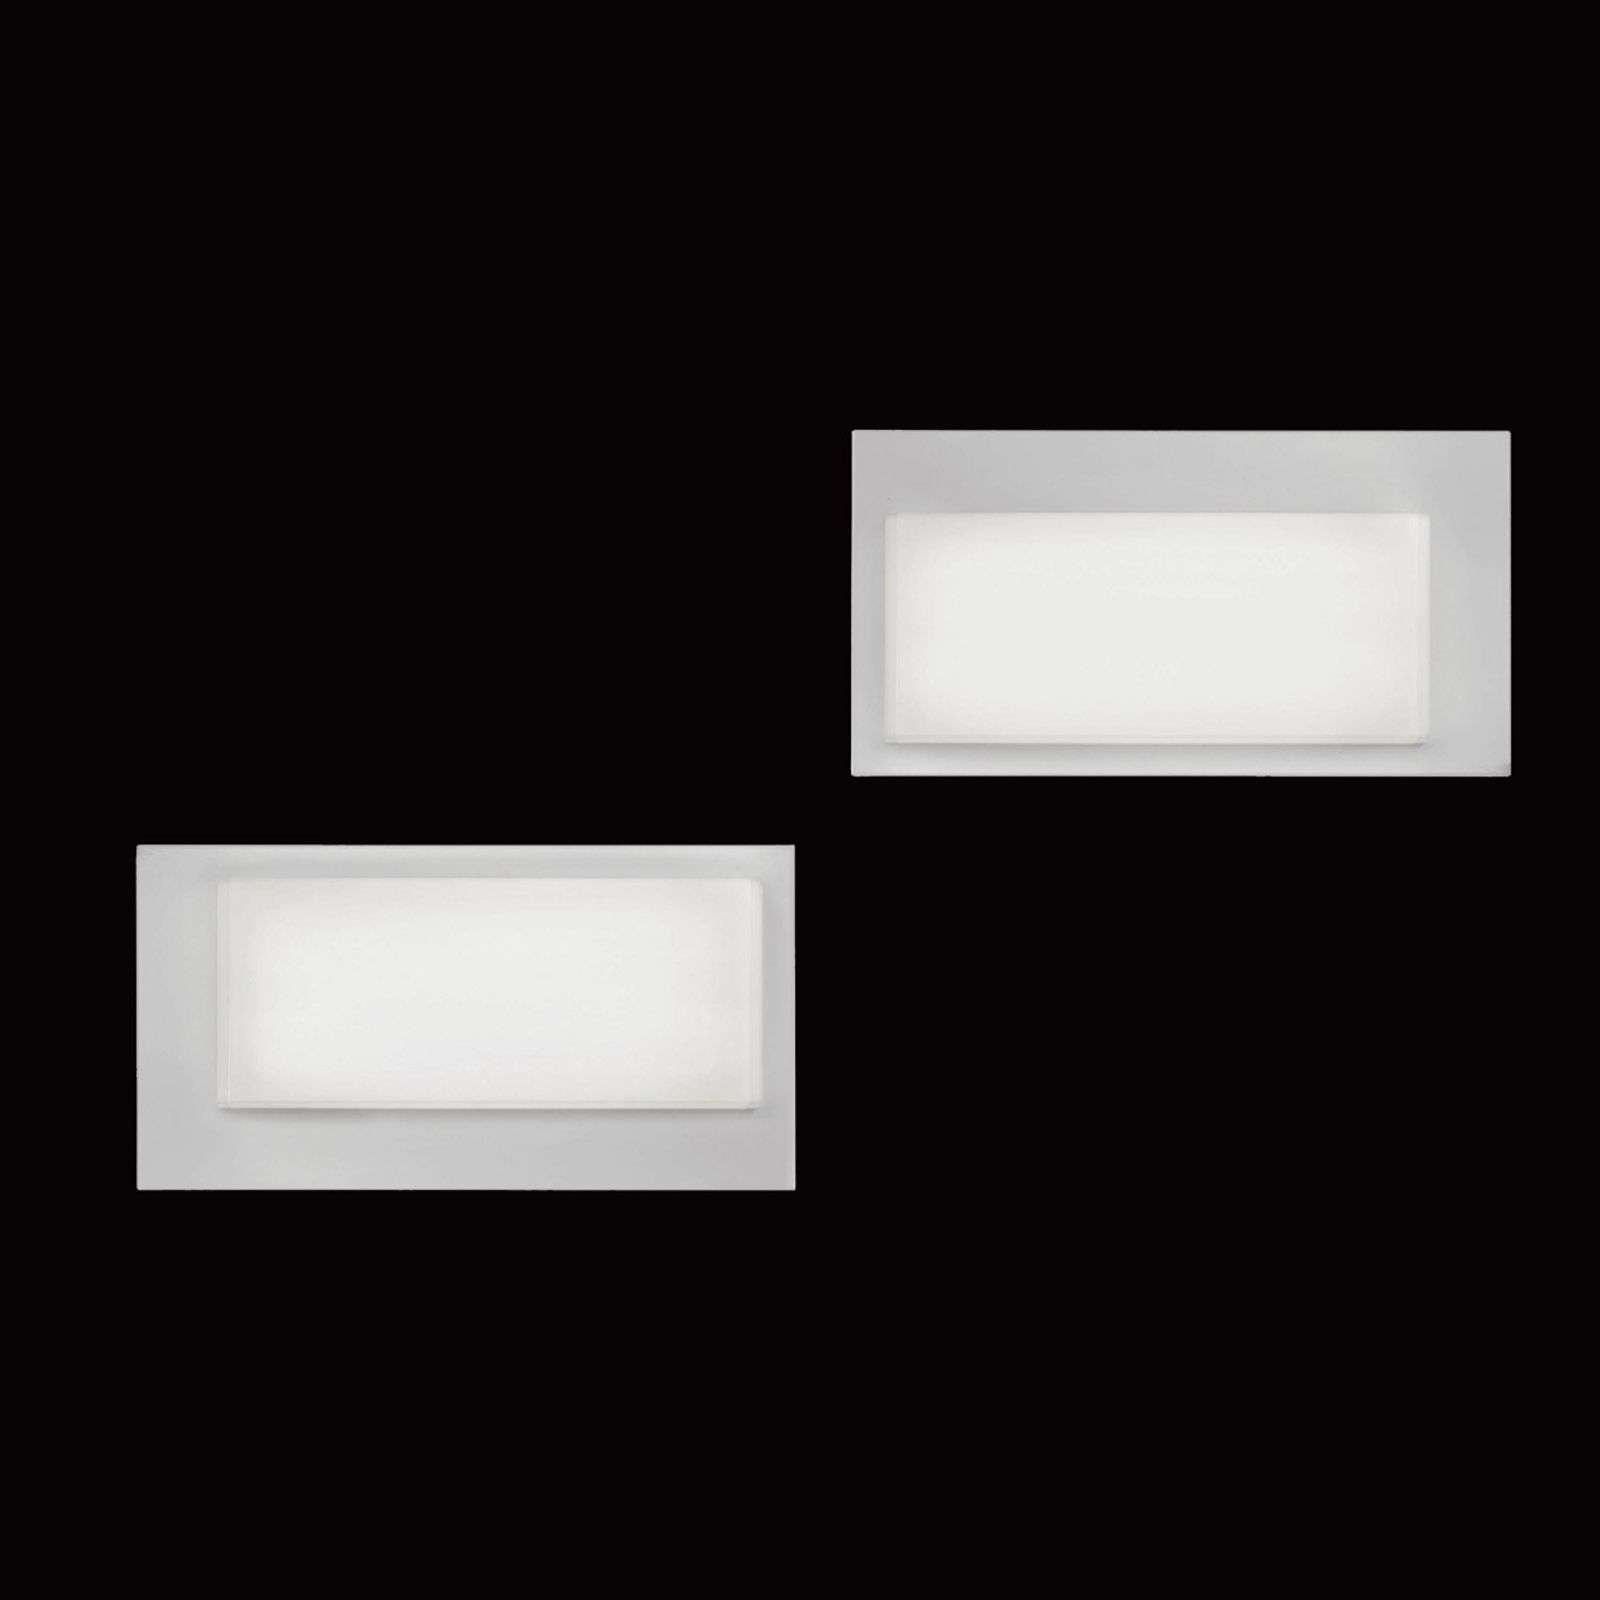 Led-wandlamp LOGIC 4000 K, wit, hoogglans